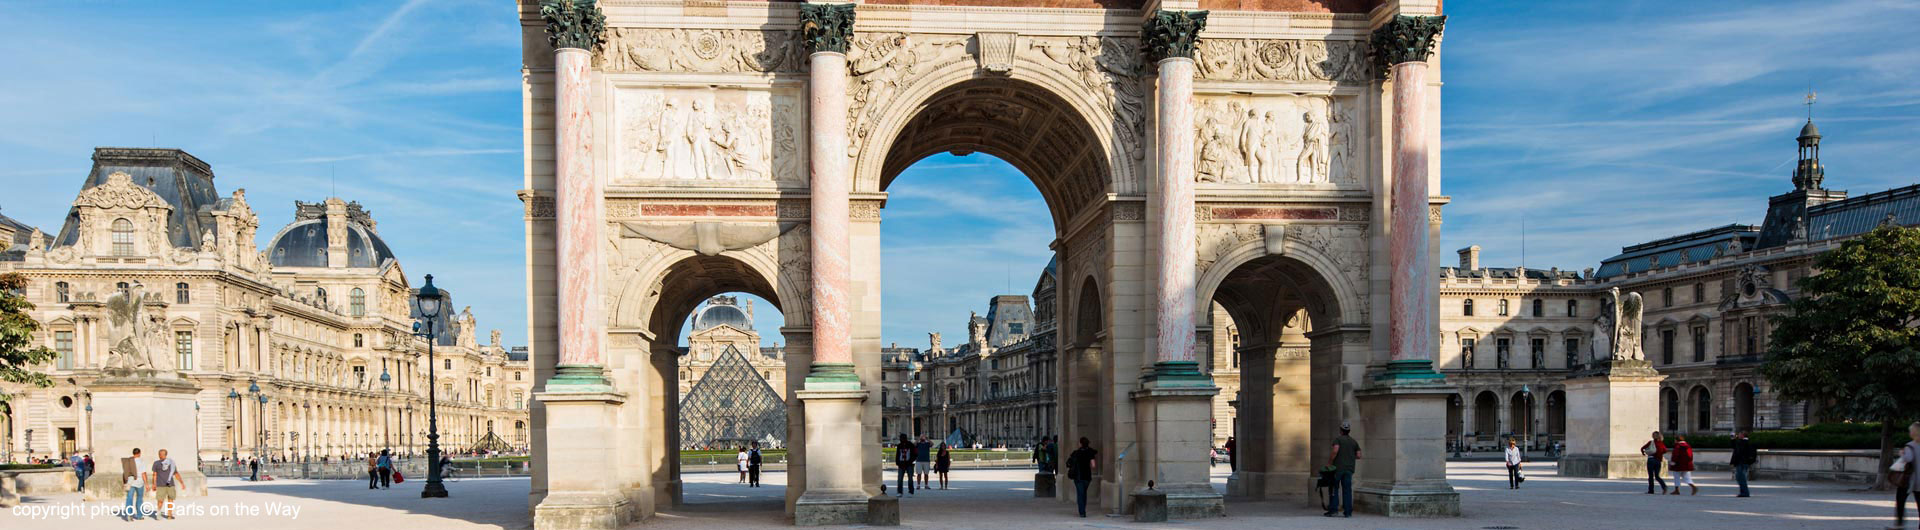 ARC DU CARROUSEL OUTSIDE THE LOUVRE